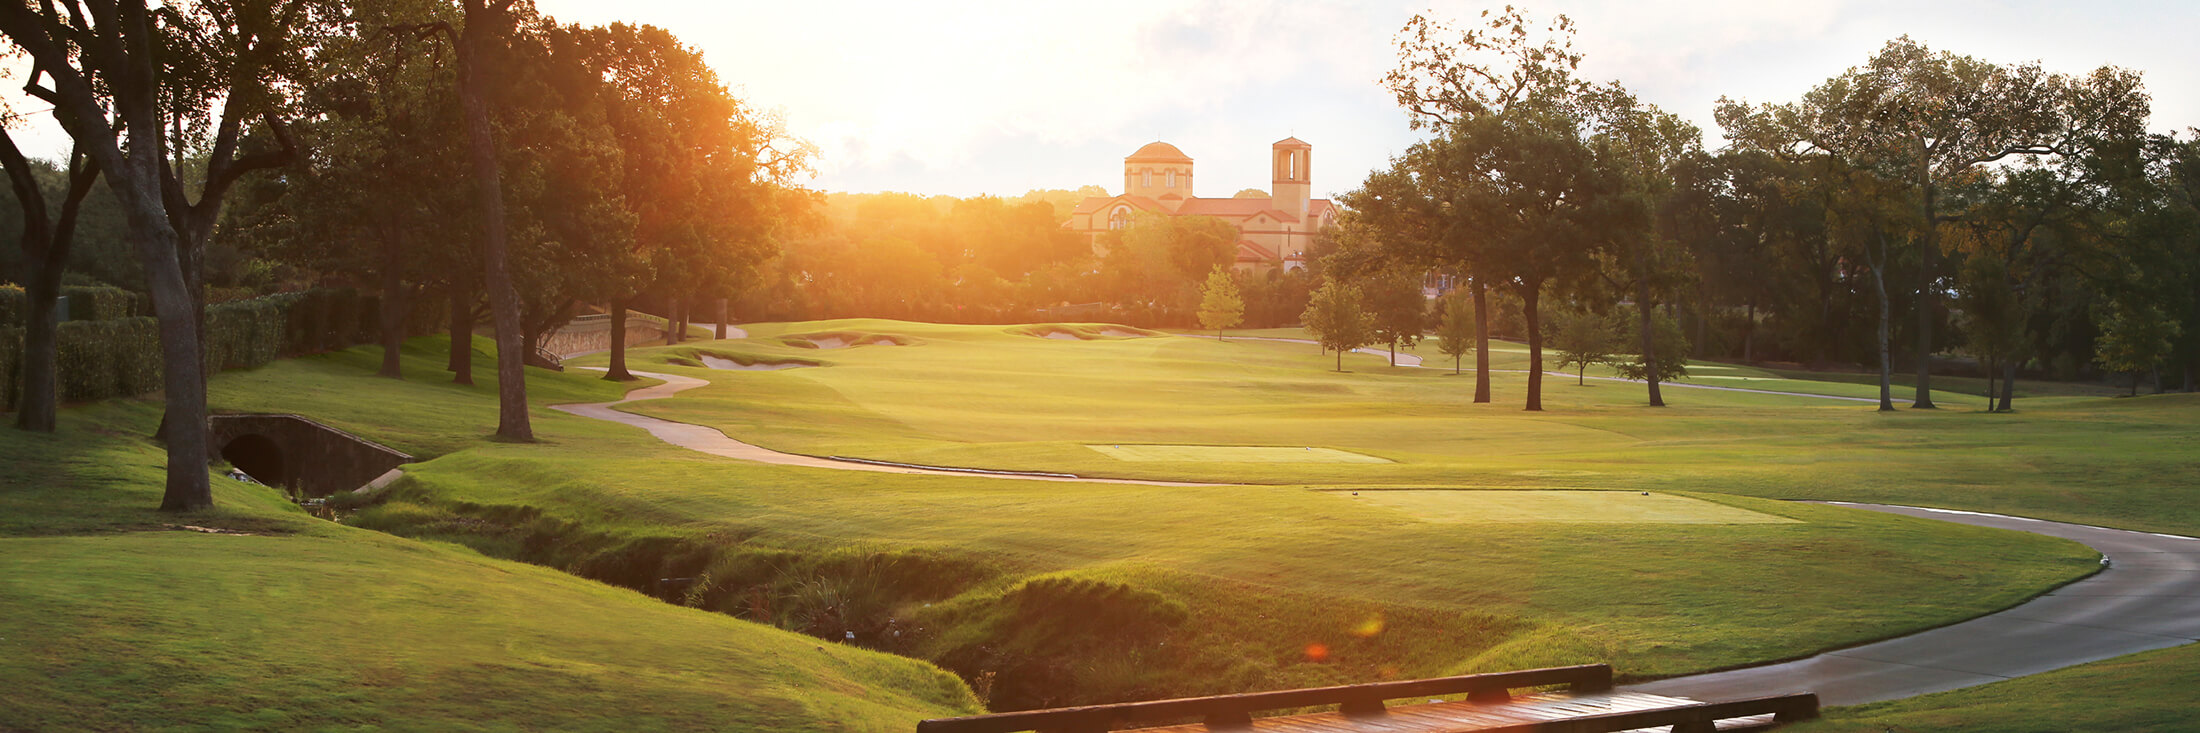 Golf Course Image - Northwood Club No. 1